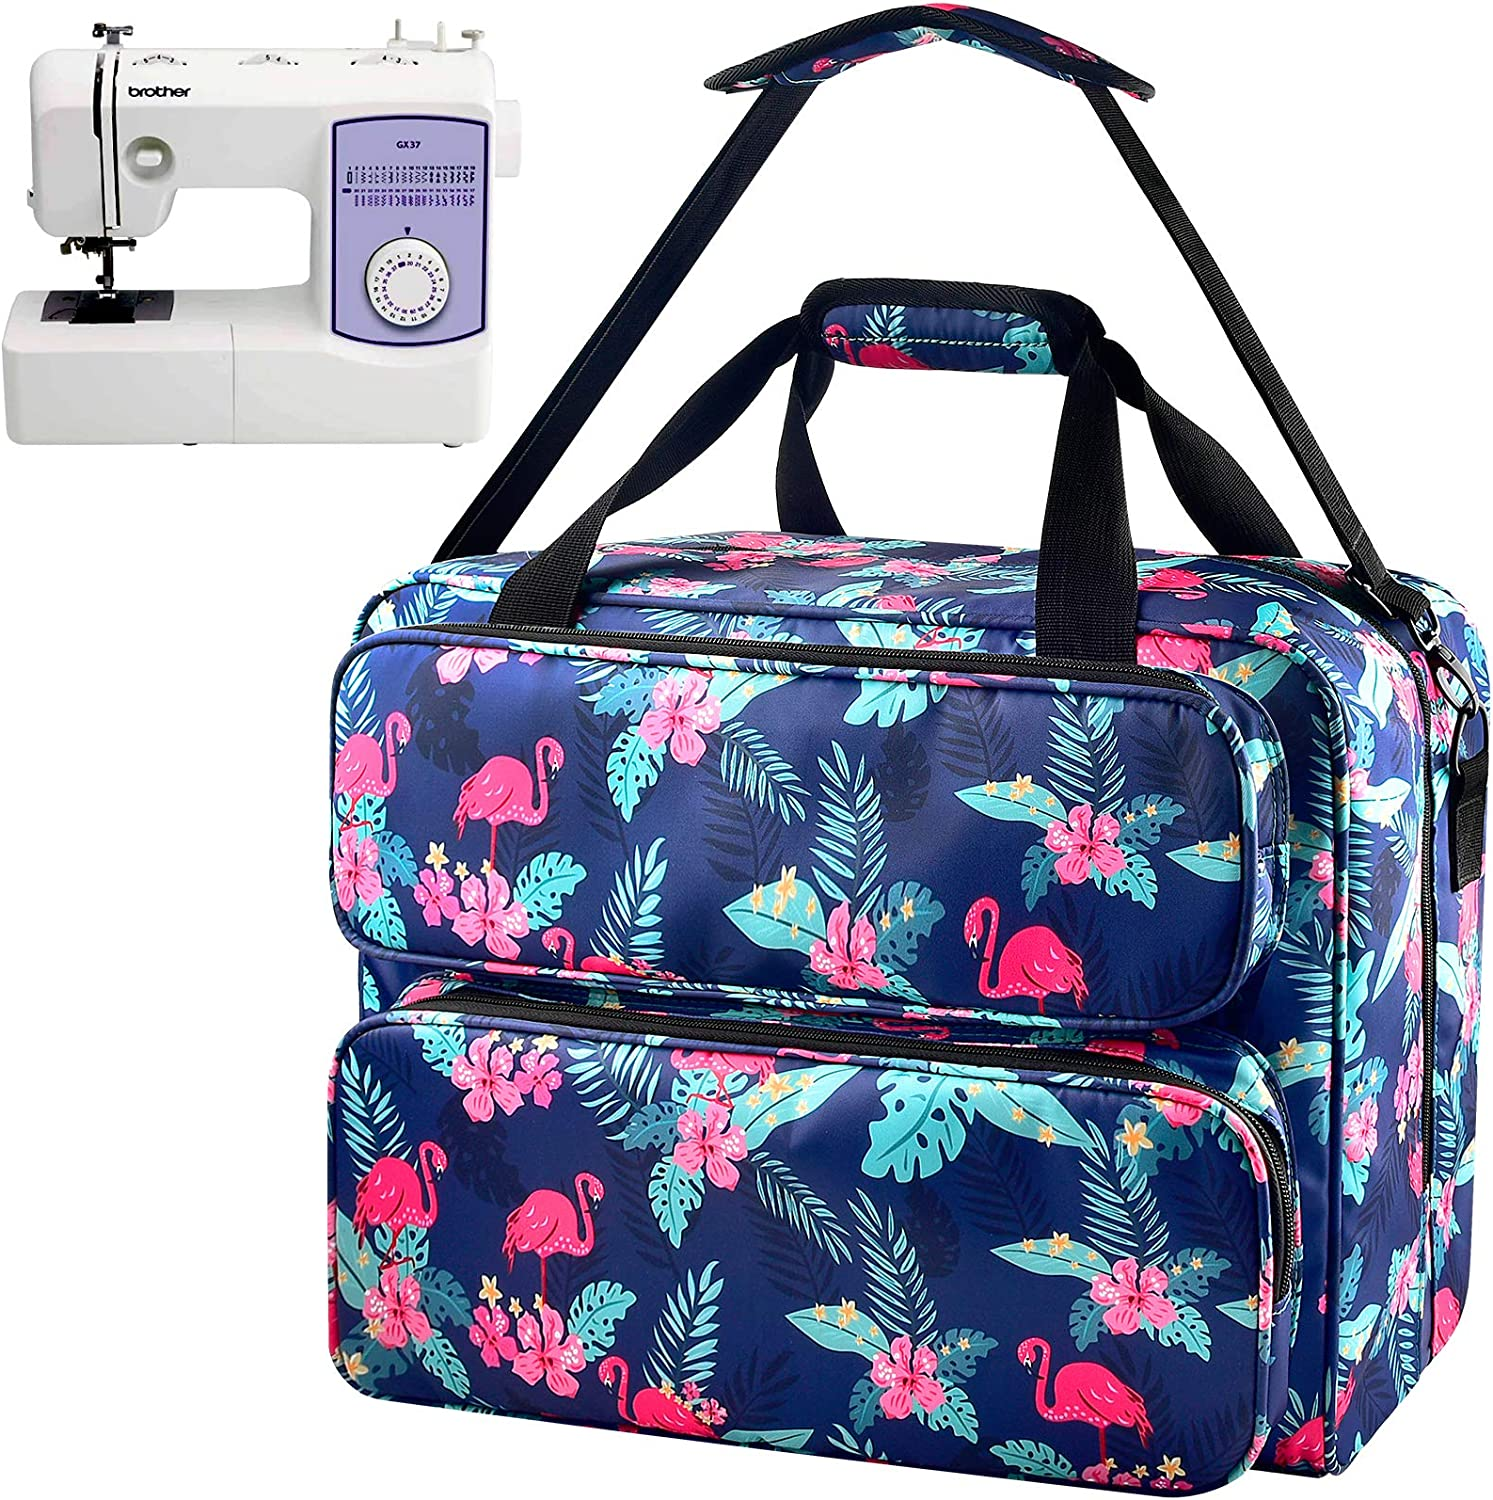 Sewing Machine Bag E-More Sewing Machine Carrying Case Portable Sewing Machine Tote Bag with Removable Padding Pad Storage Bag with A Large Capacity for Most Sewing Machines